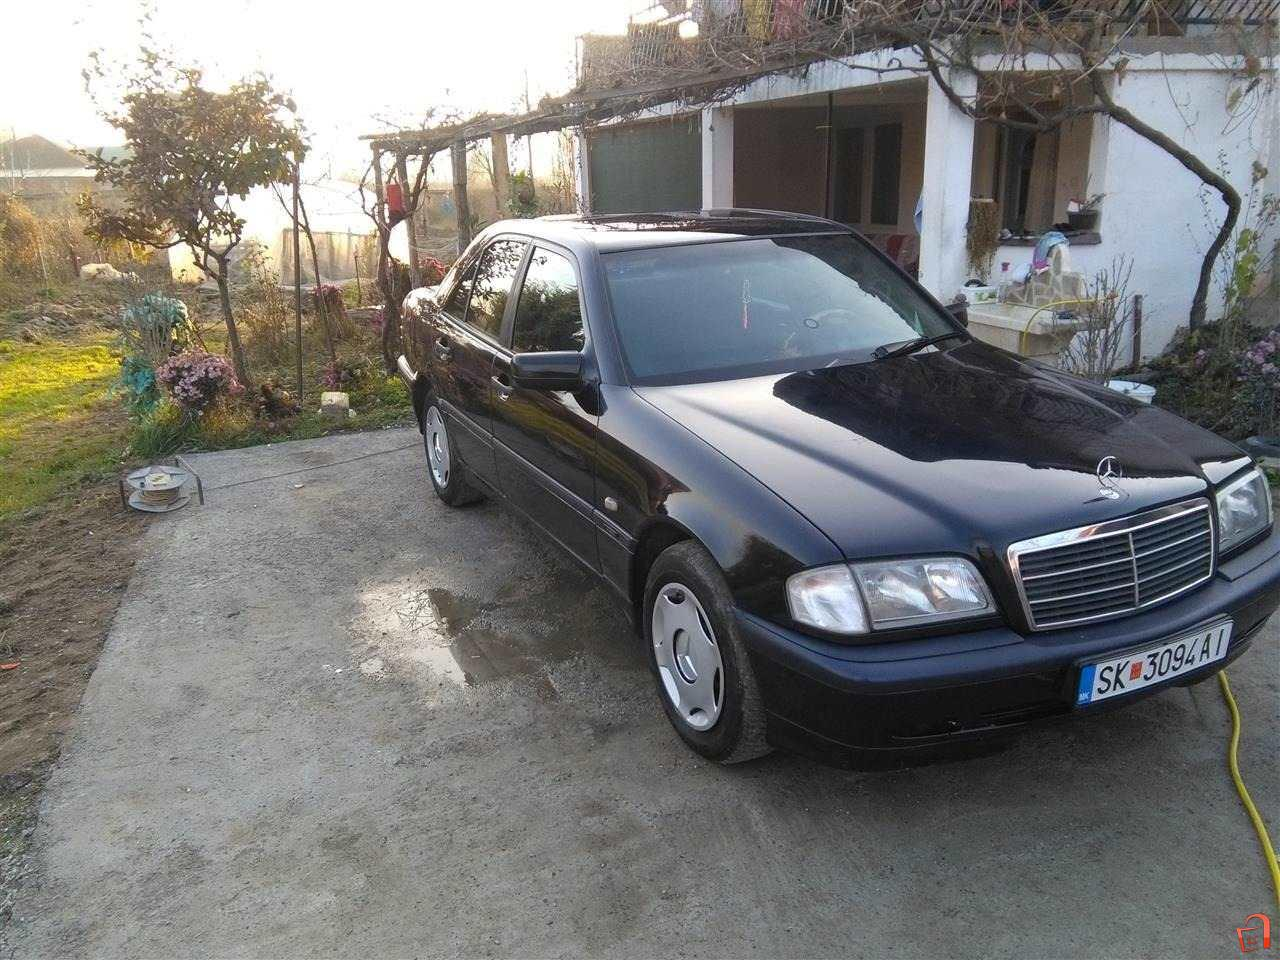 ad mercedes c 200 cdi for sale skopje. Black Bedroom Furniture Sets. Home Design Ideas